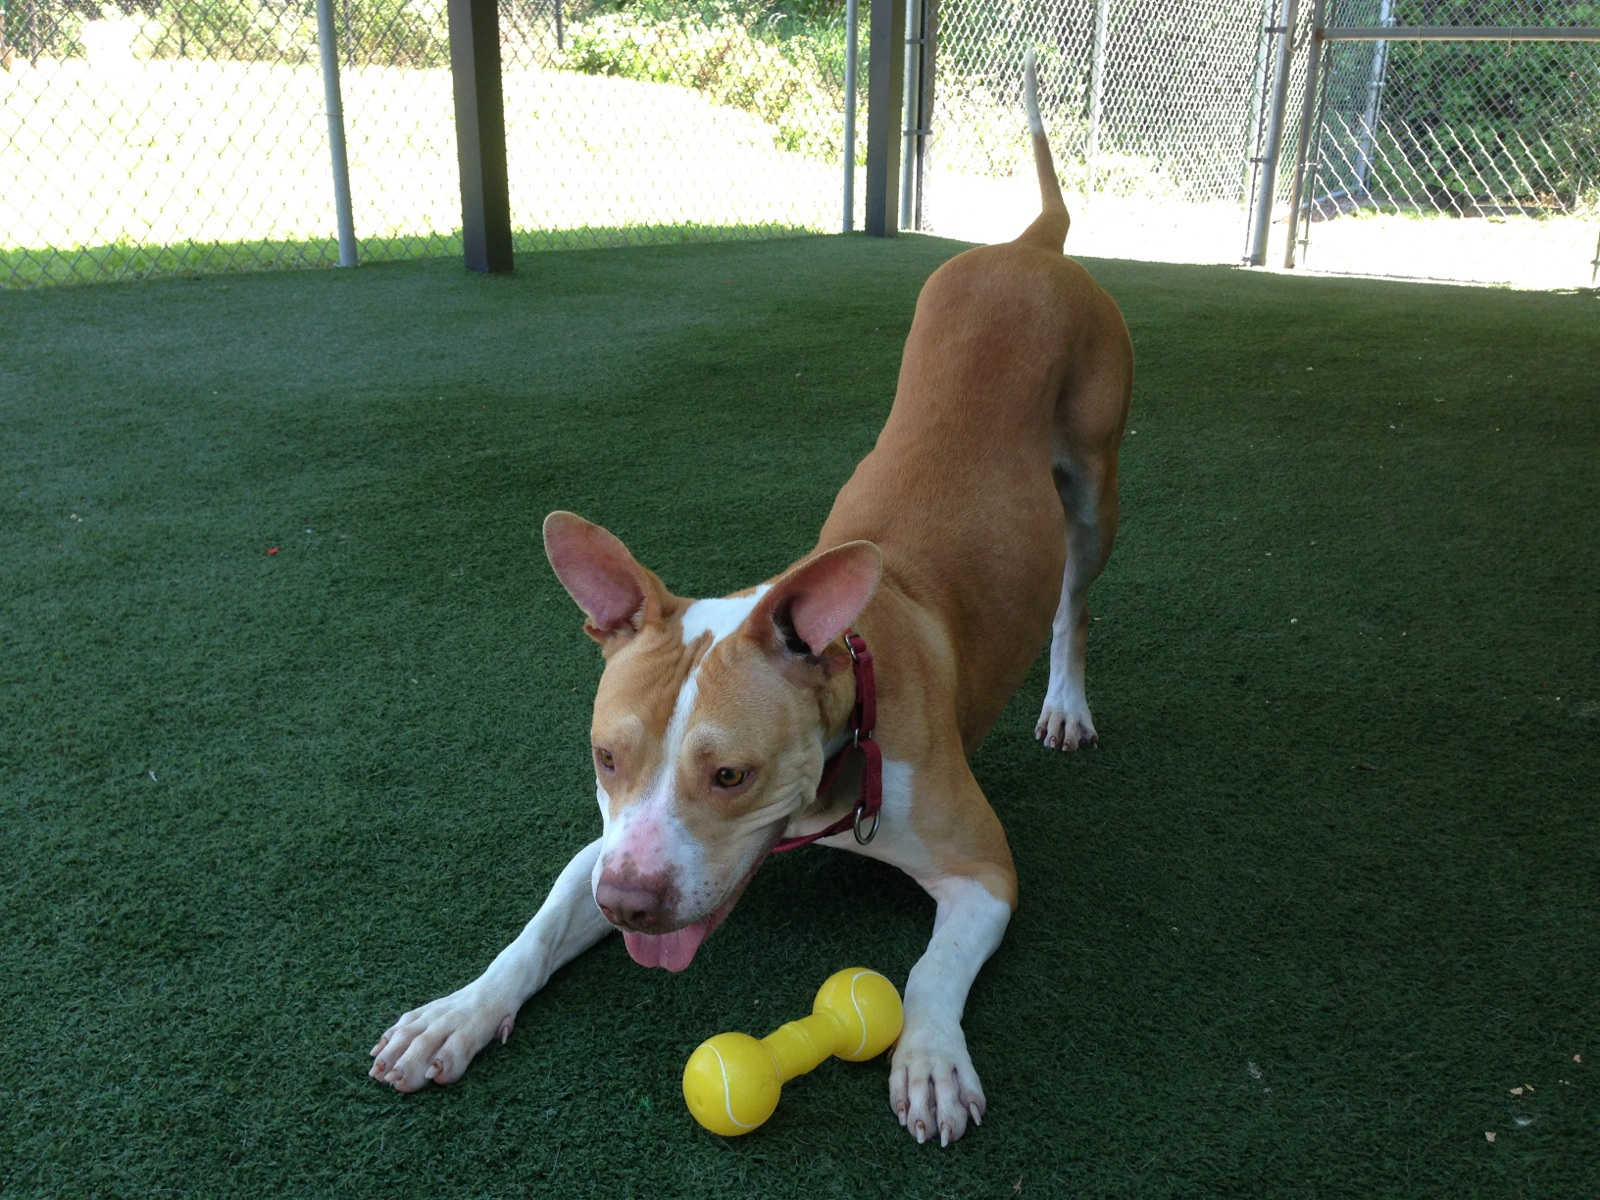 Here is Bab's now. You can see what a playful, sweet girl she is! She is happy to be off the streets and is looking for that special family to love her forever.